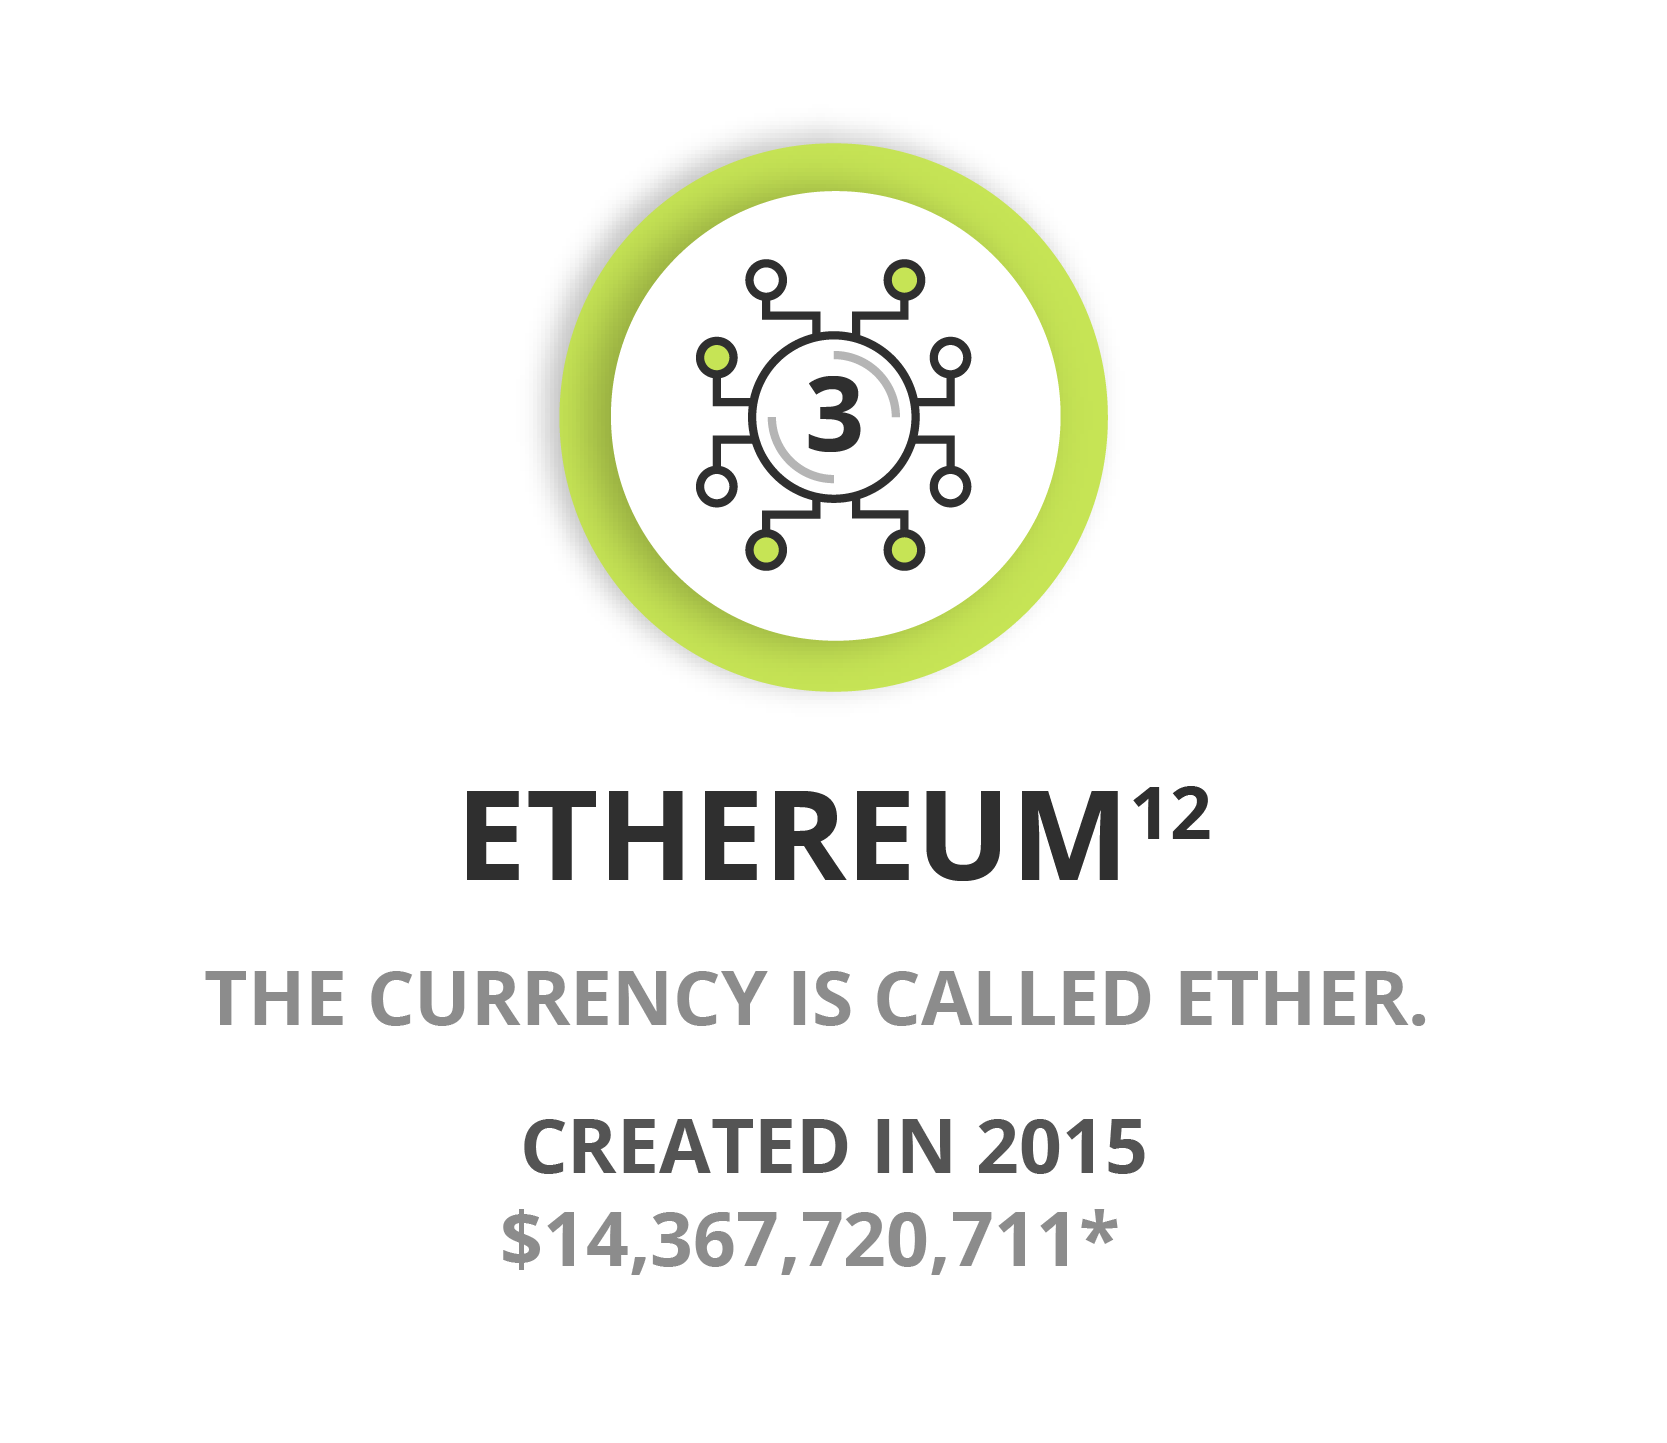 Ethereum - The cryptocurrency is called Ether